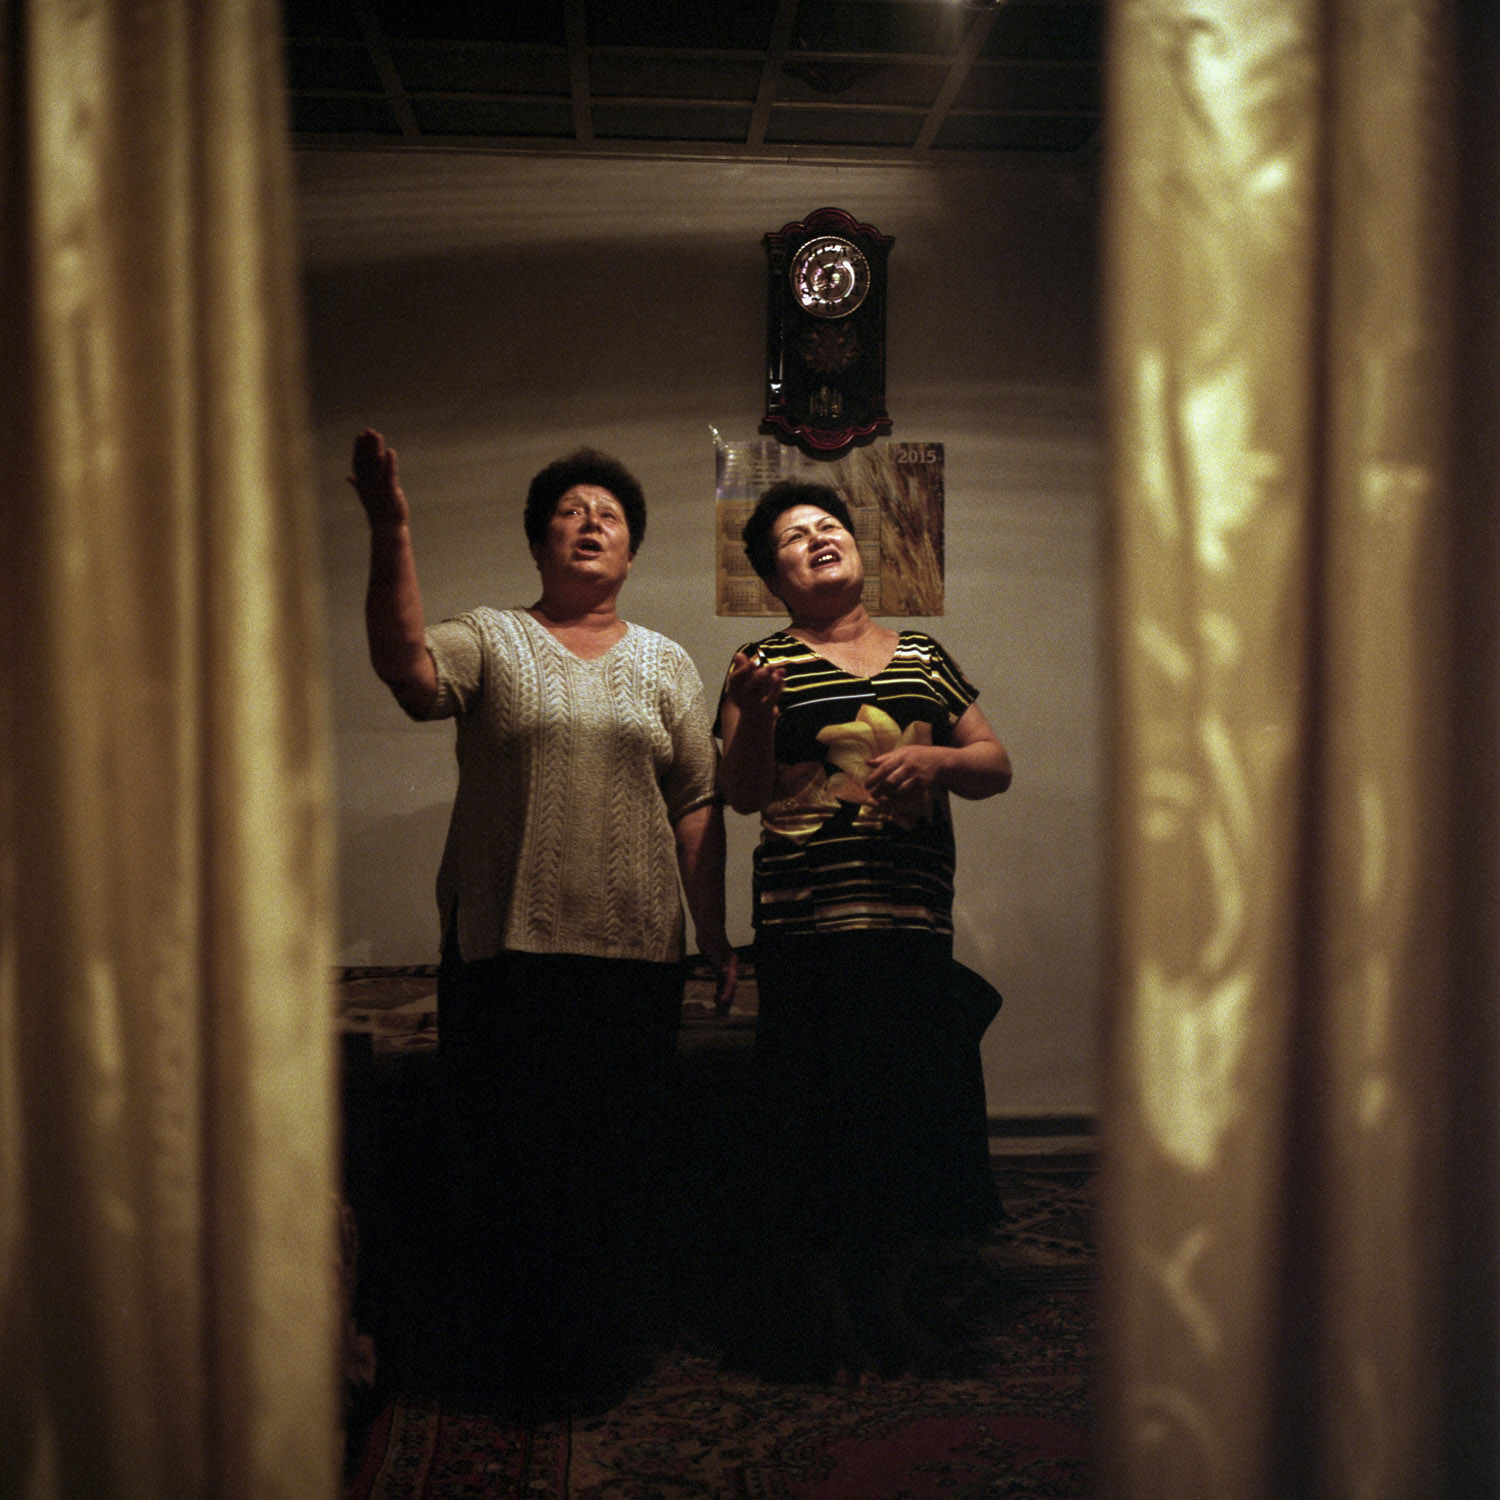 Sisters Anna and Aliona Kim, singing a Korean folk song. As a Korean living in the Russian Far East, their father was forcefully deported to Kazakhstan. Their mother was Russian thus free to stay, but unwilling to be separated from her husband, she decided to board the train with him. Eskeldy-bi, Kazakhstan. January 2015.